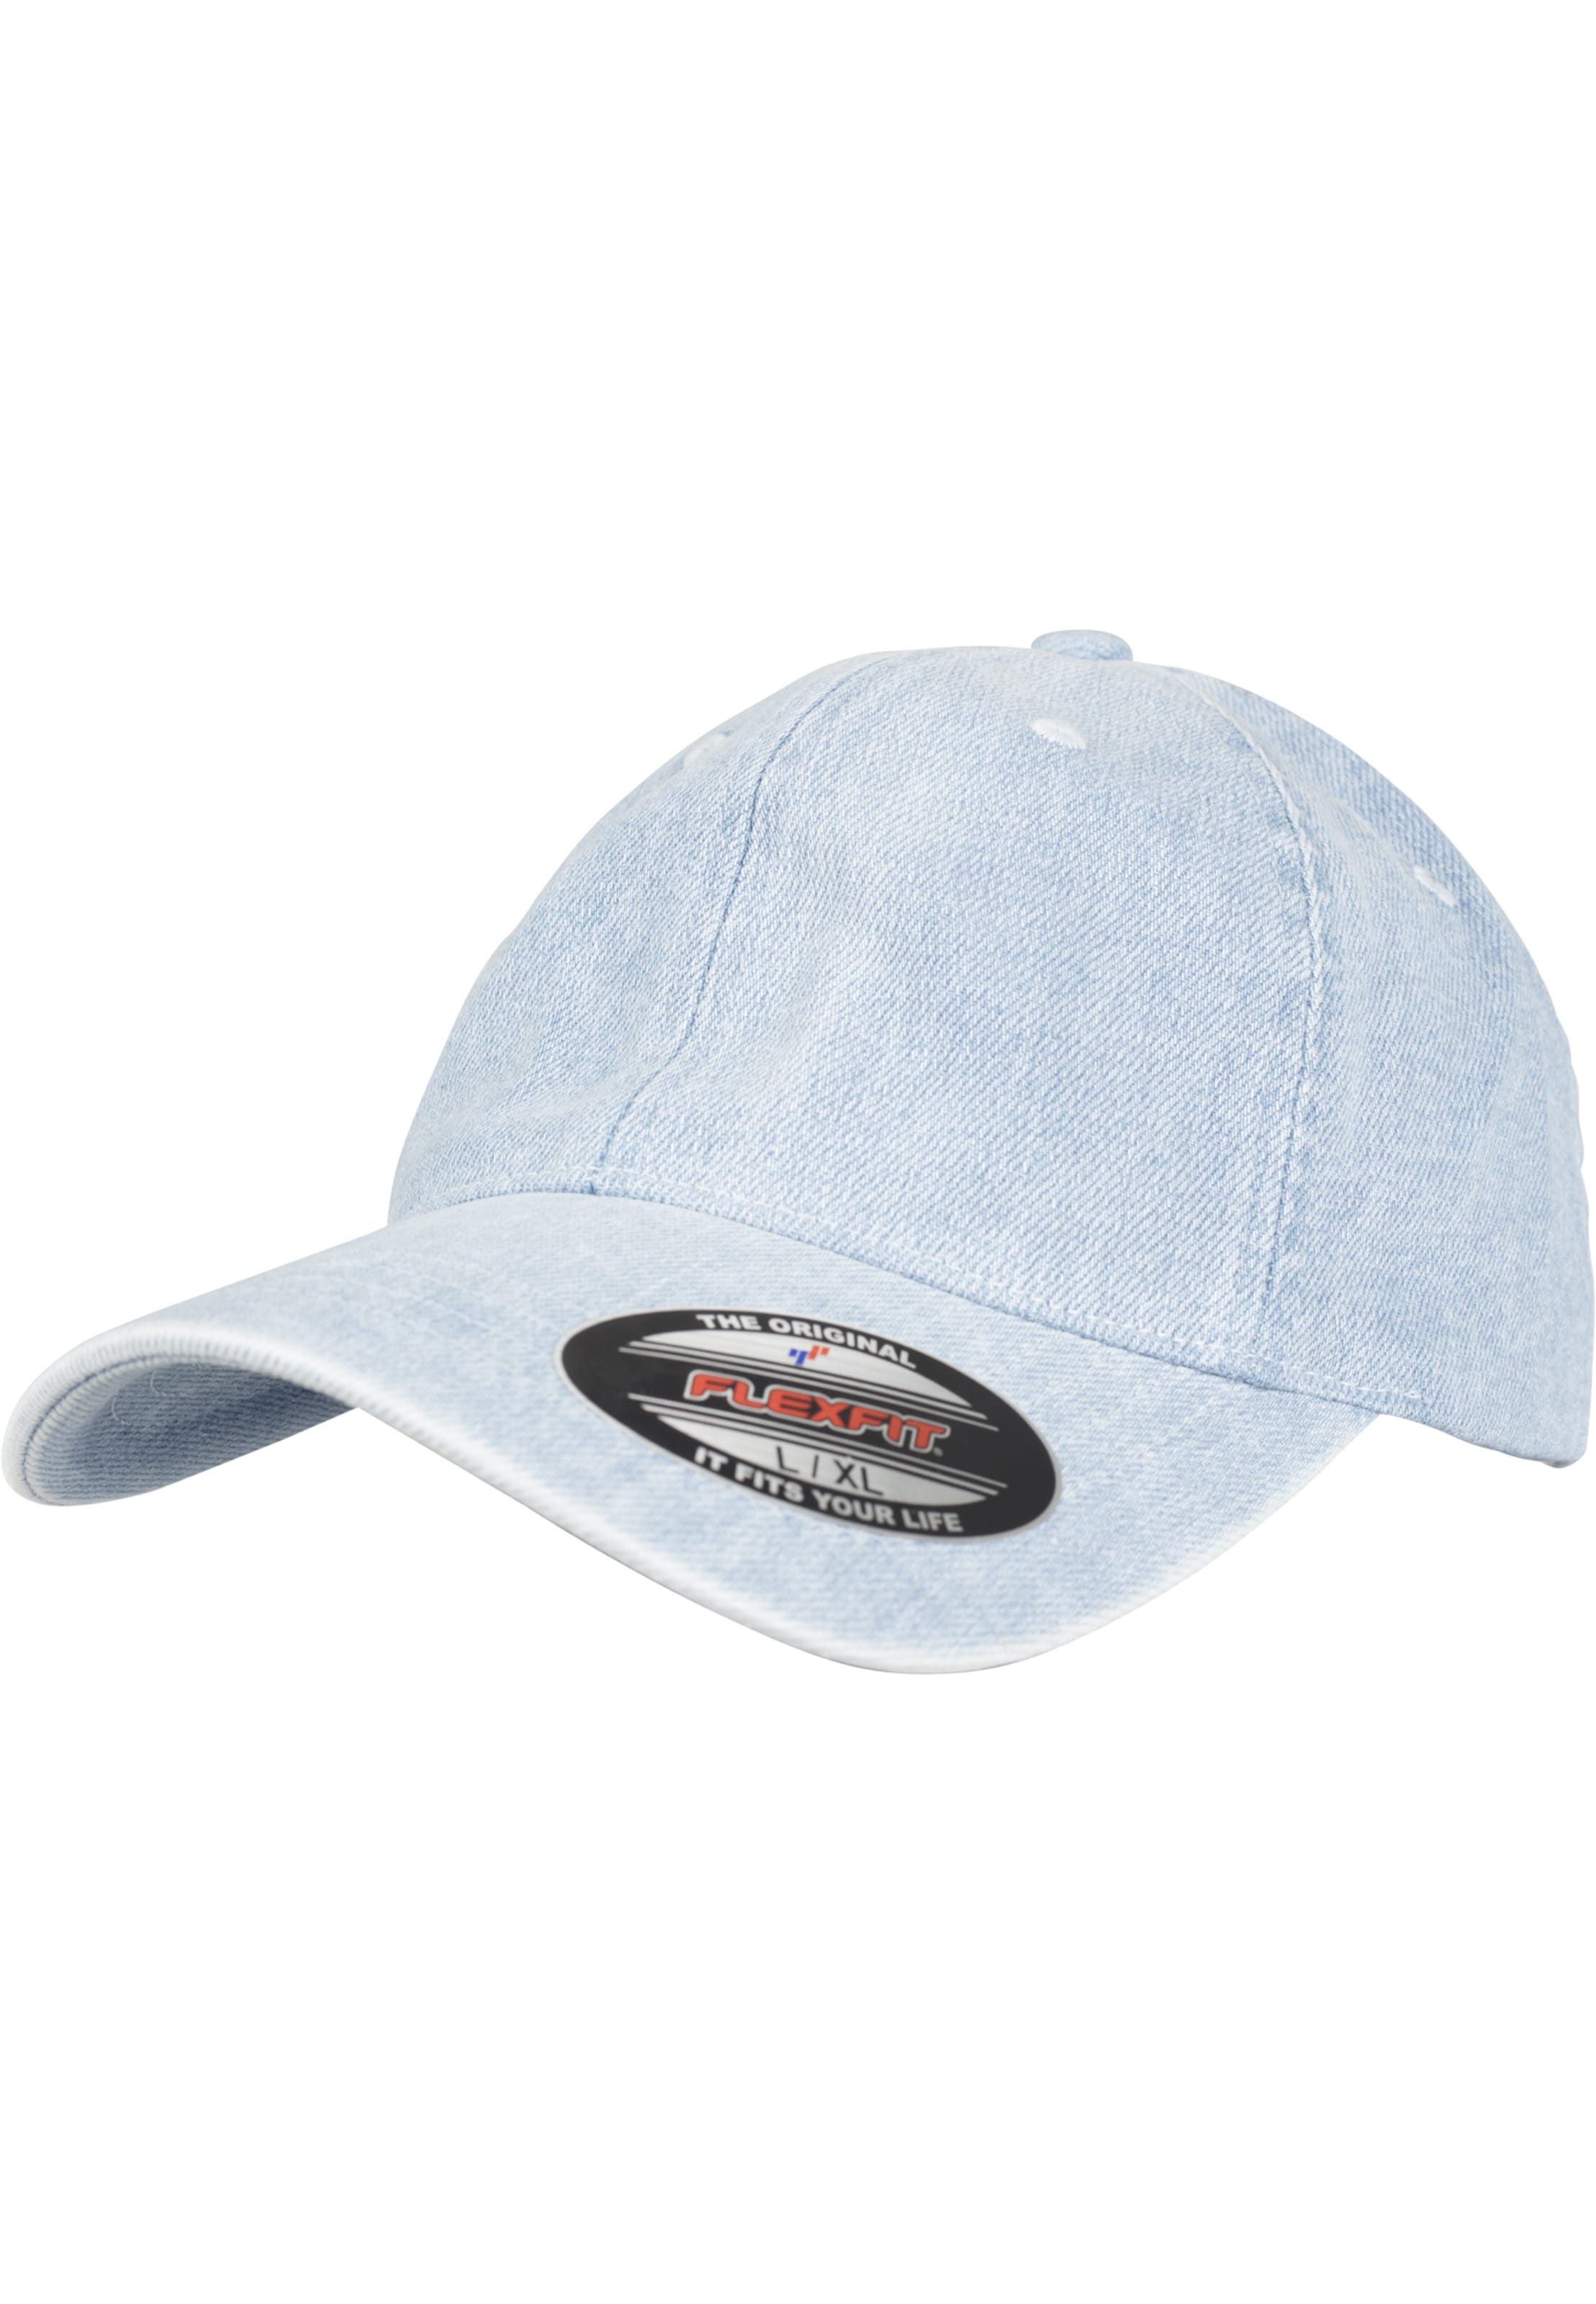 Hellblau Low In Profile Cap Flexfit nwyPvmON08